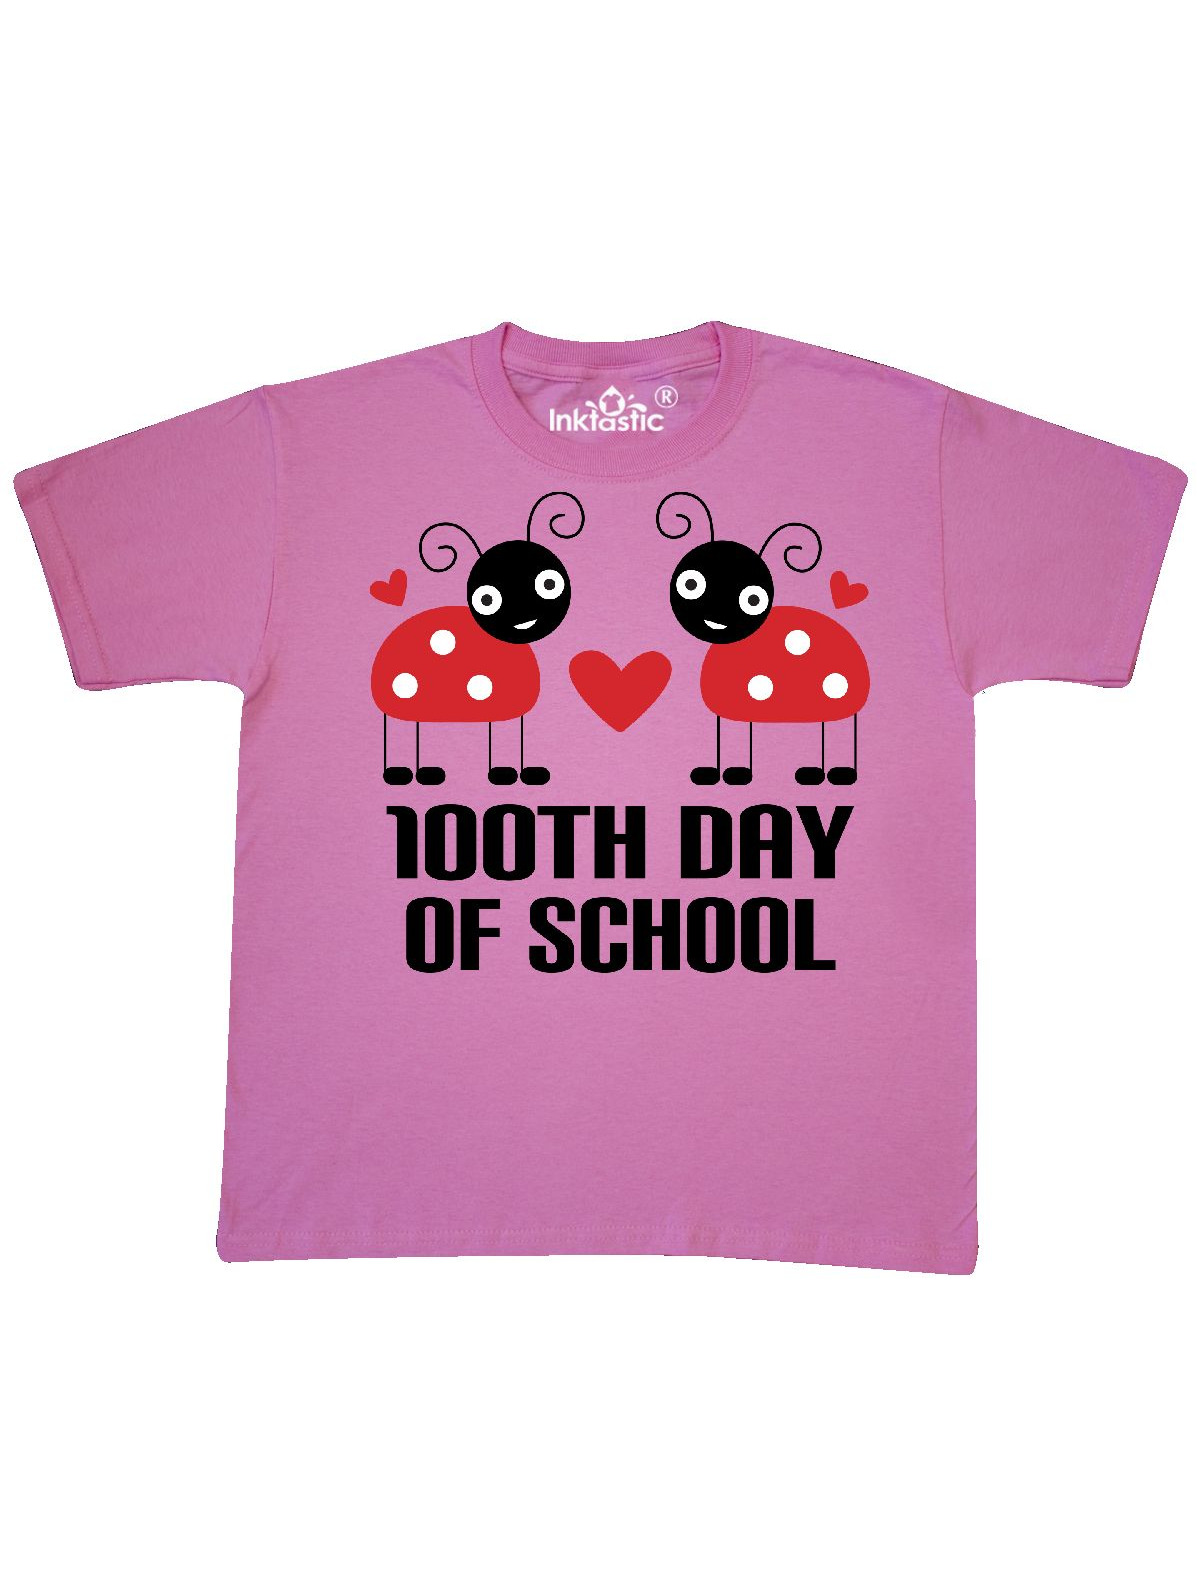 100th Day Of School 100 Days Youth T-Shirt